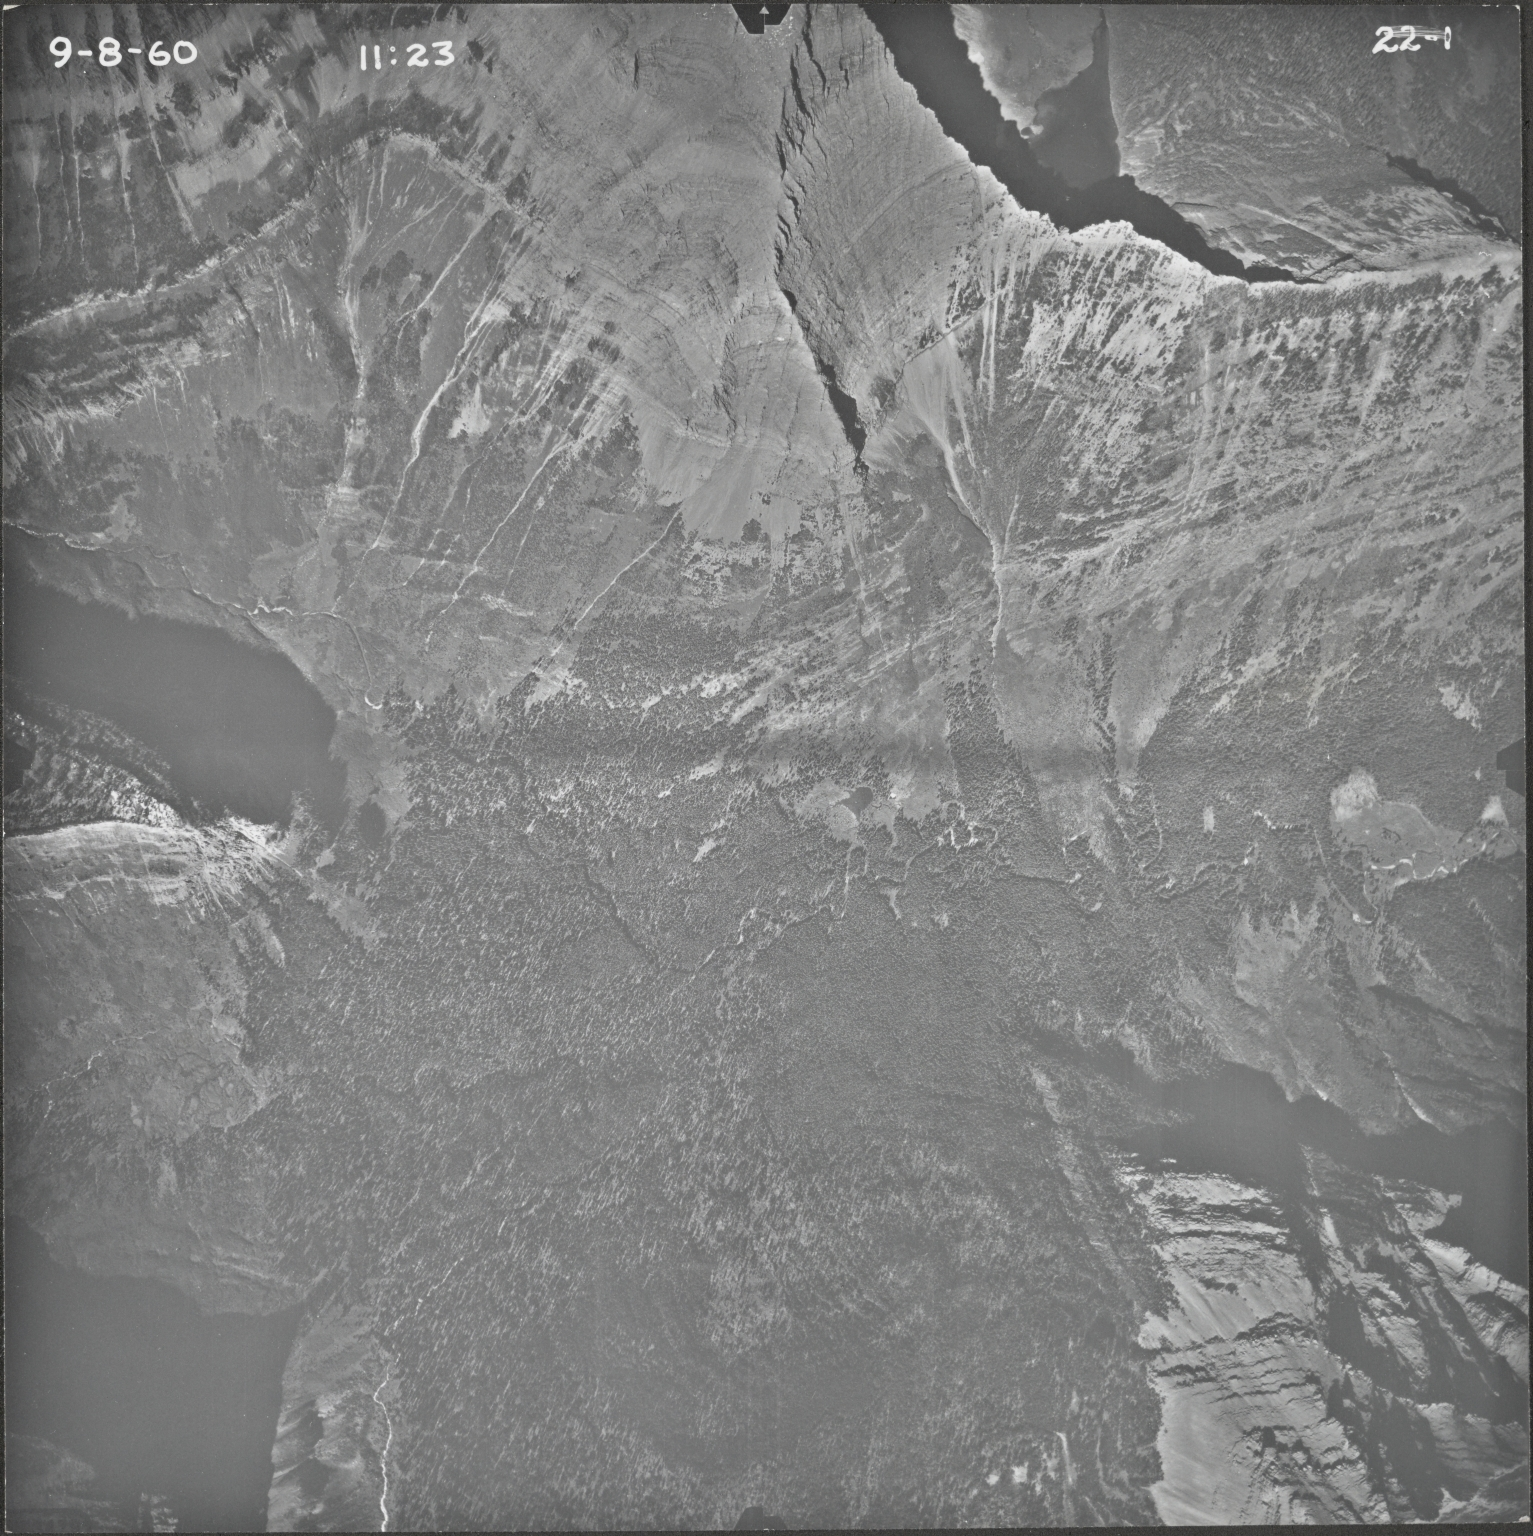 Head of Red Eagle Creek, aerial photograph 22-1, Montana